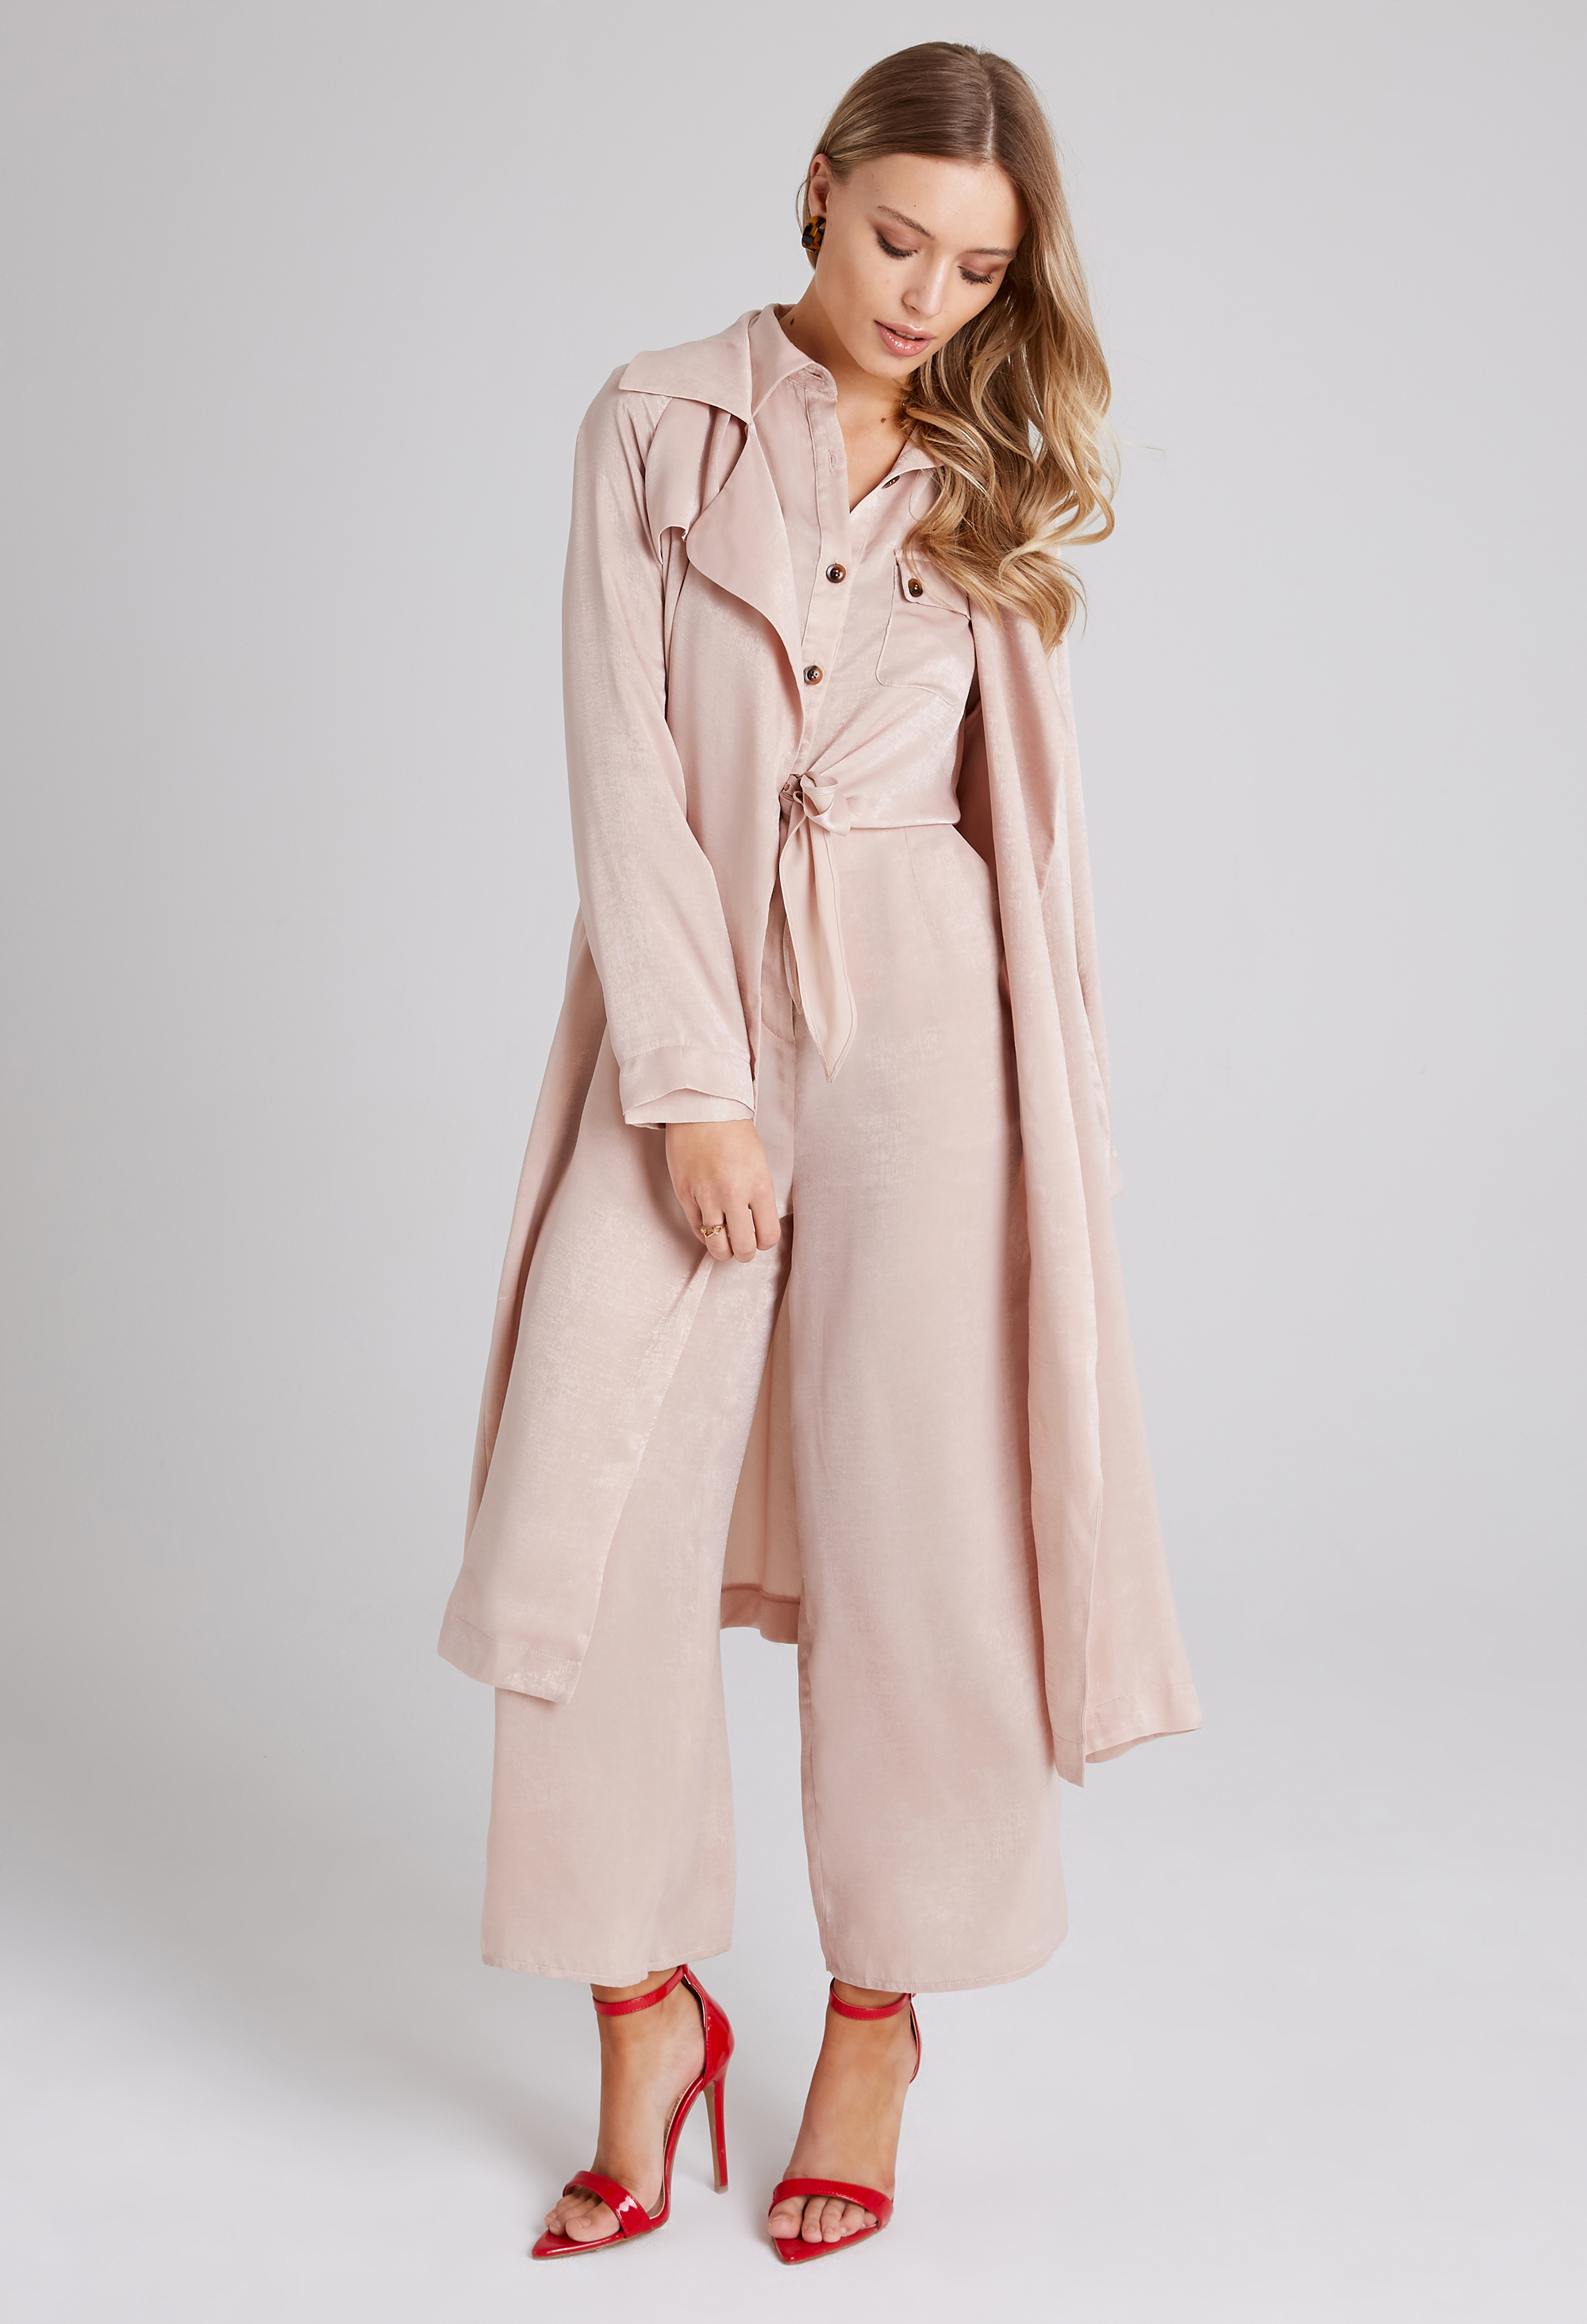 Girls On Film Sovereign Beige Satin Trench Coat; Liquid Beige Utility Jumpsuit